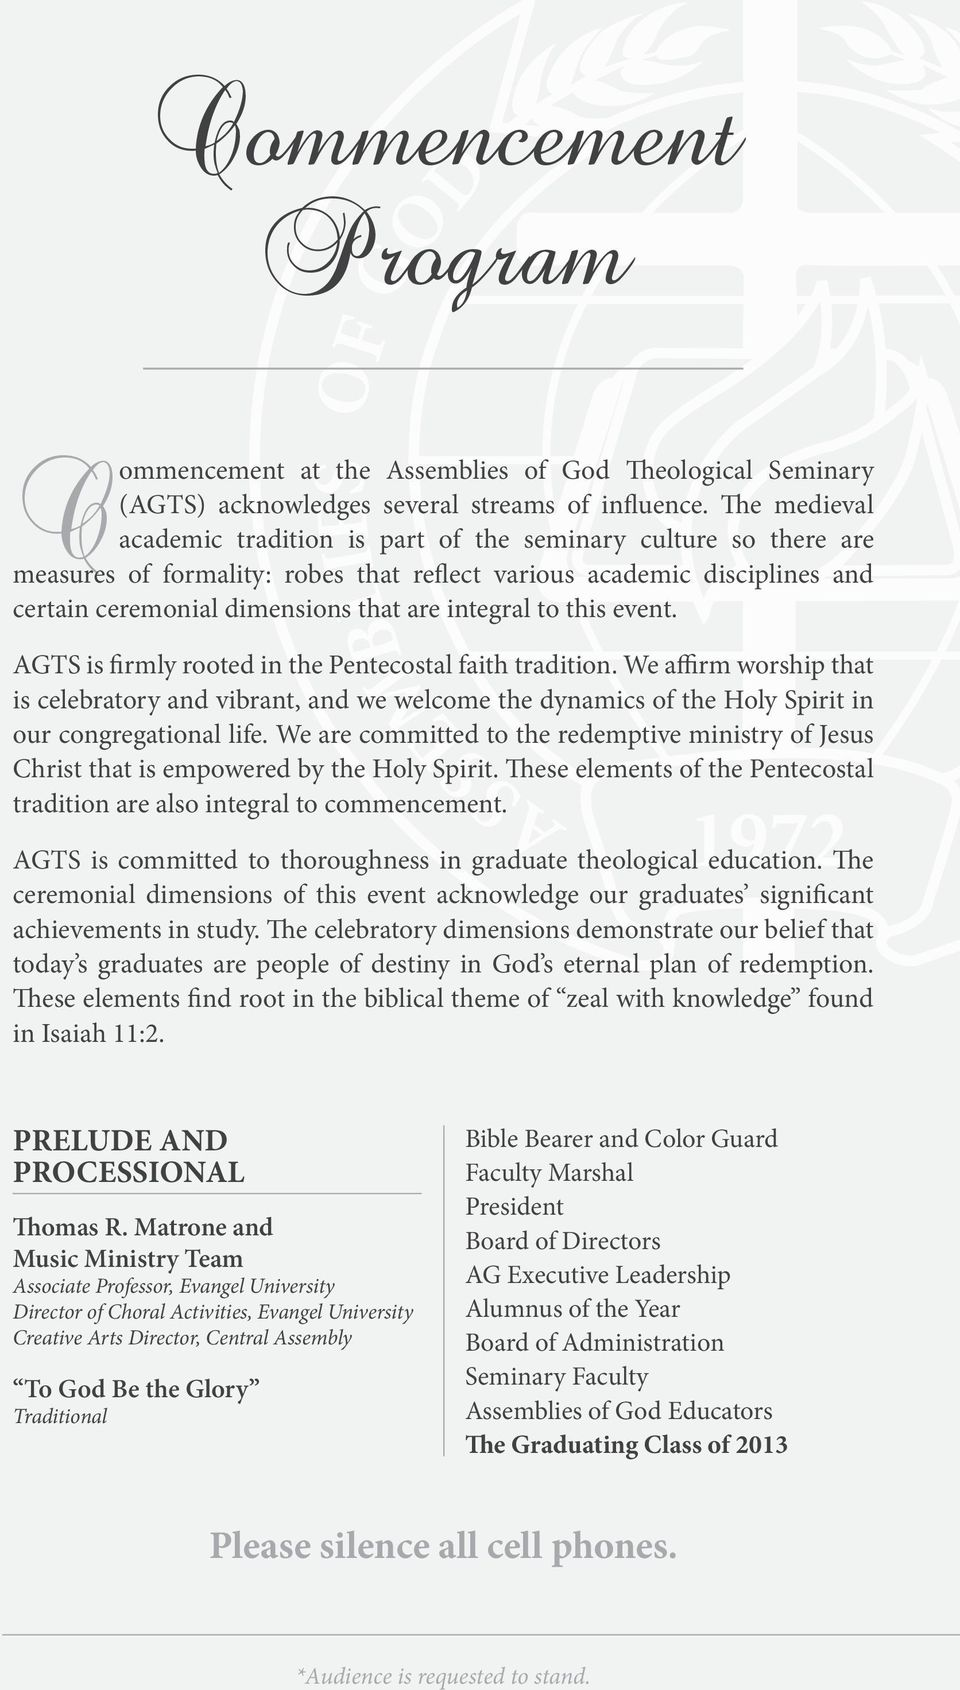 to this event. AGTS is firmly rooted in the Pentecostal faith tradition. We affirm worship that is celebratory and vibrant, and we welcome the dynamics of the Holy Spirit in our congregational life.